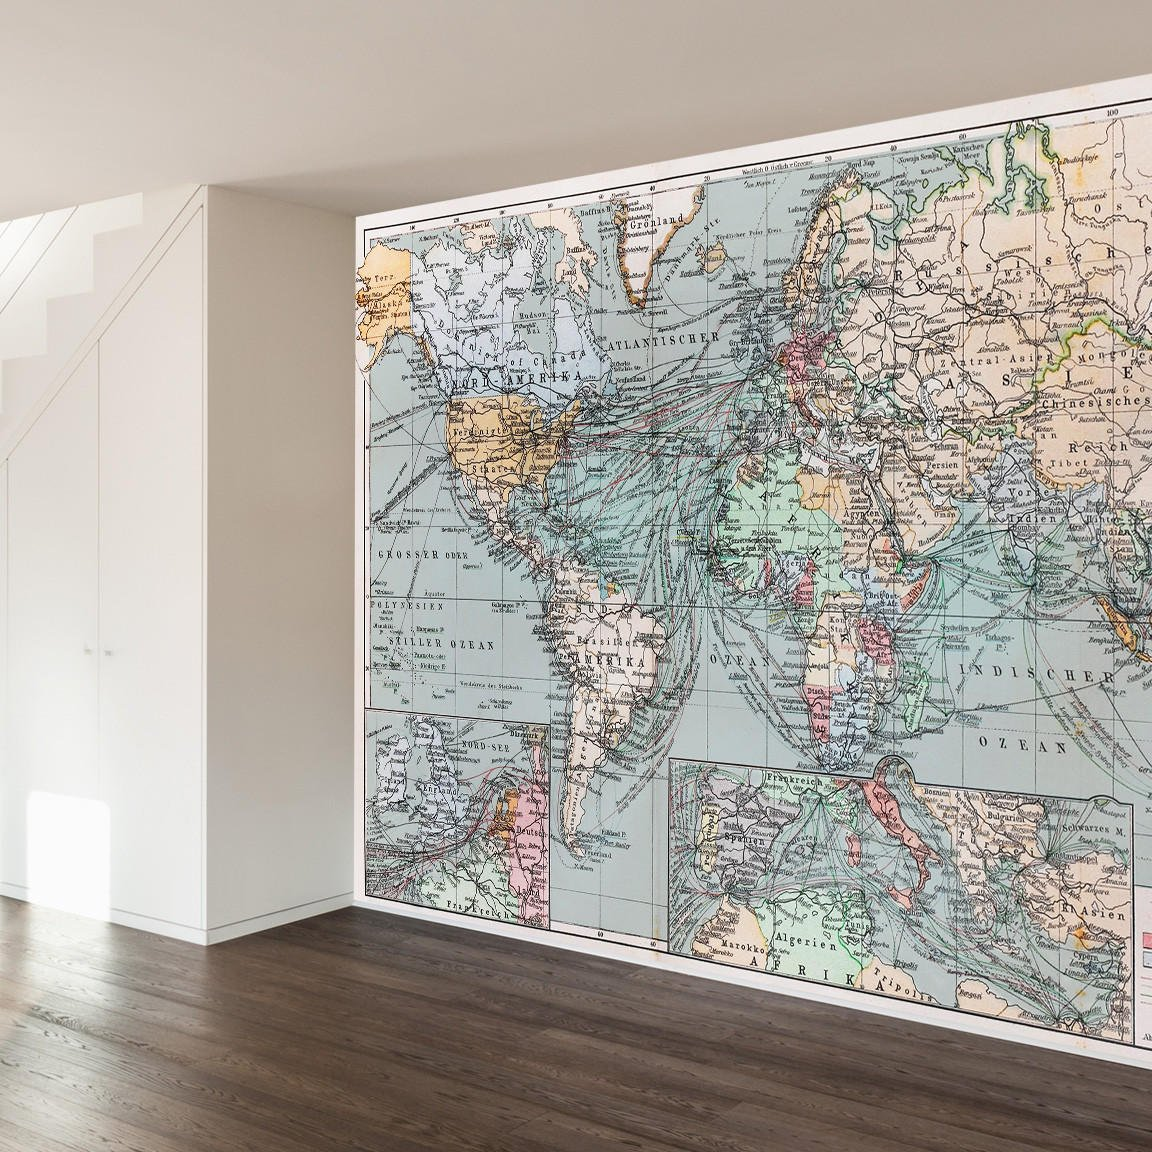 Vintage world map wall mural decal from wallsneedlove for Antique map mural